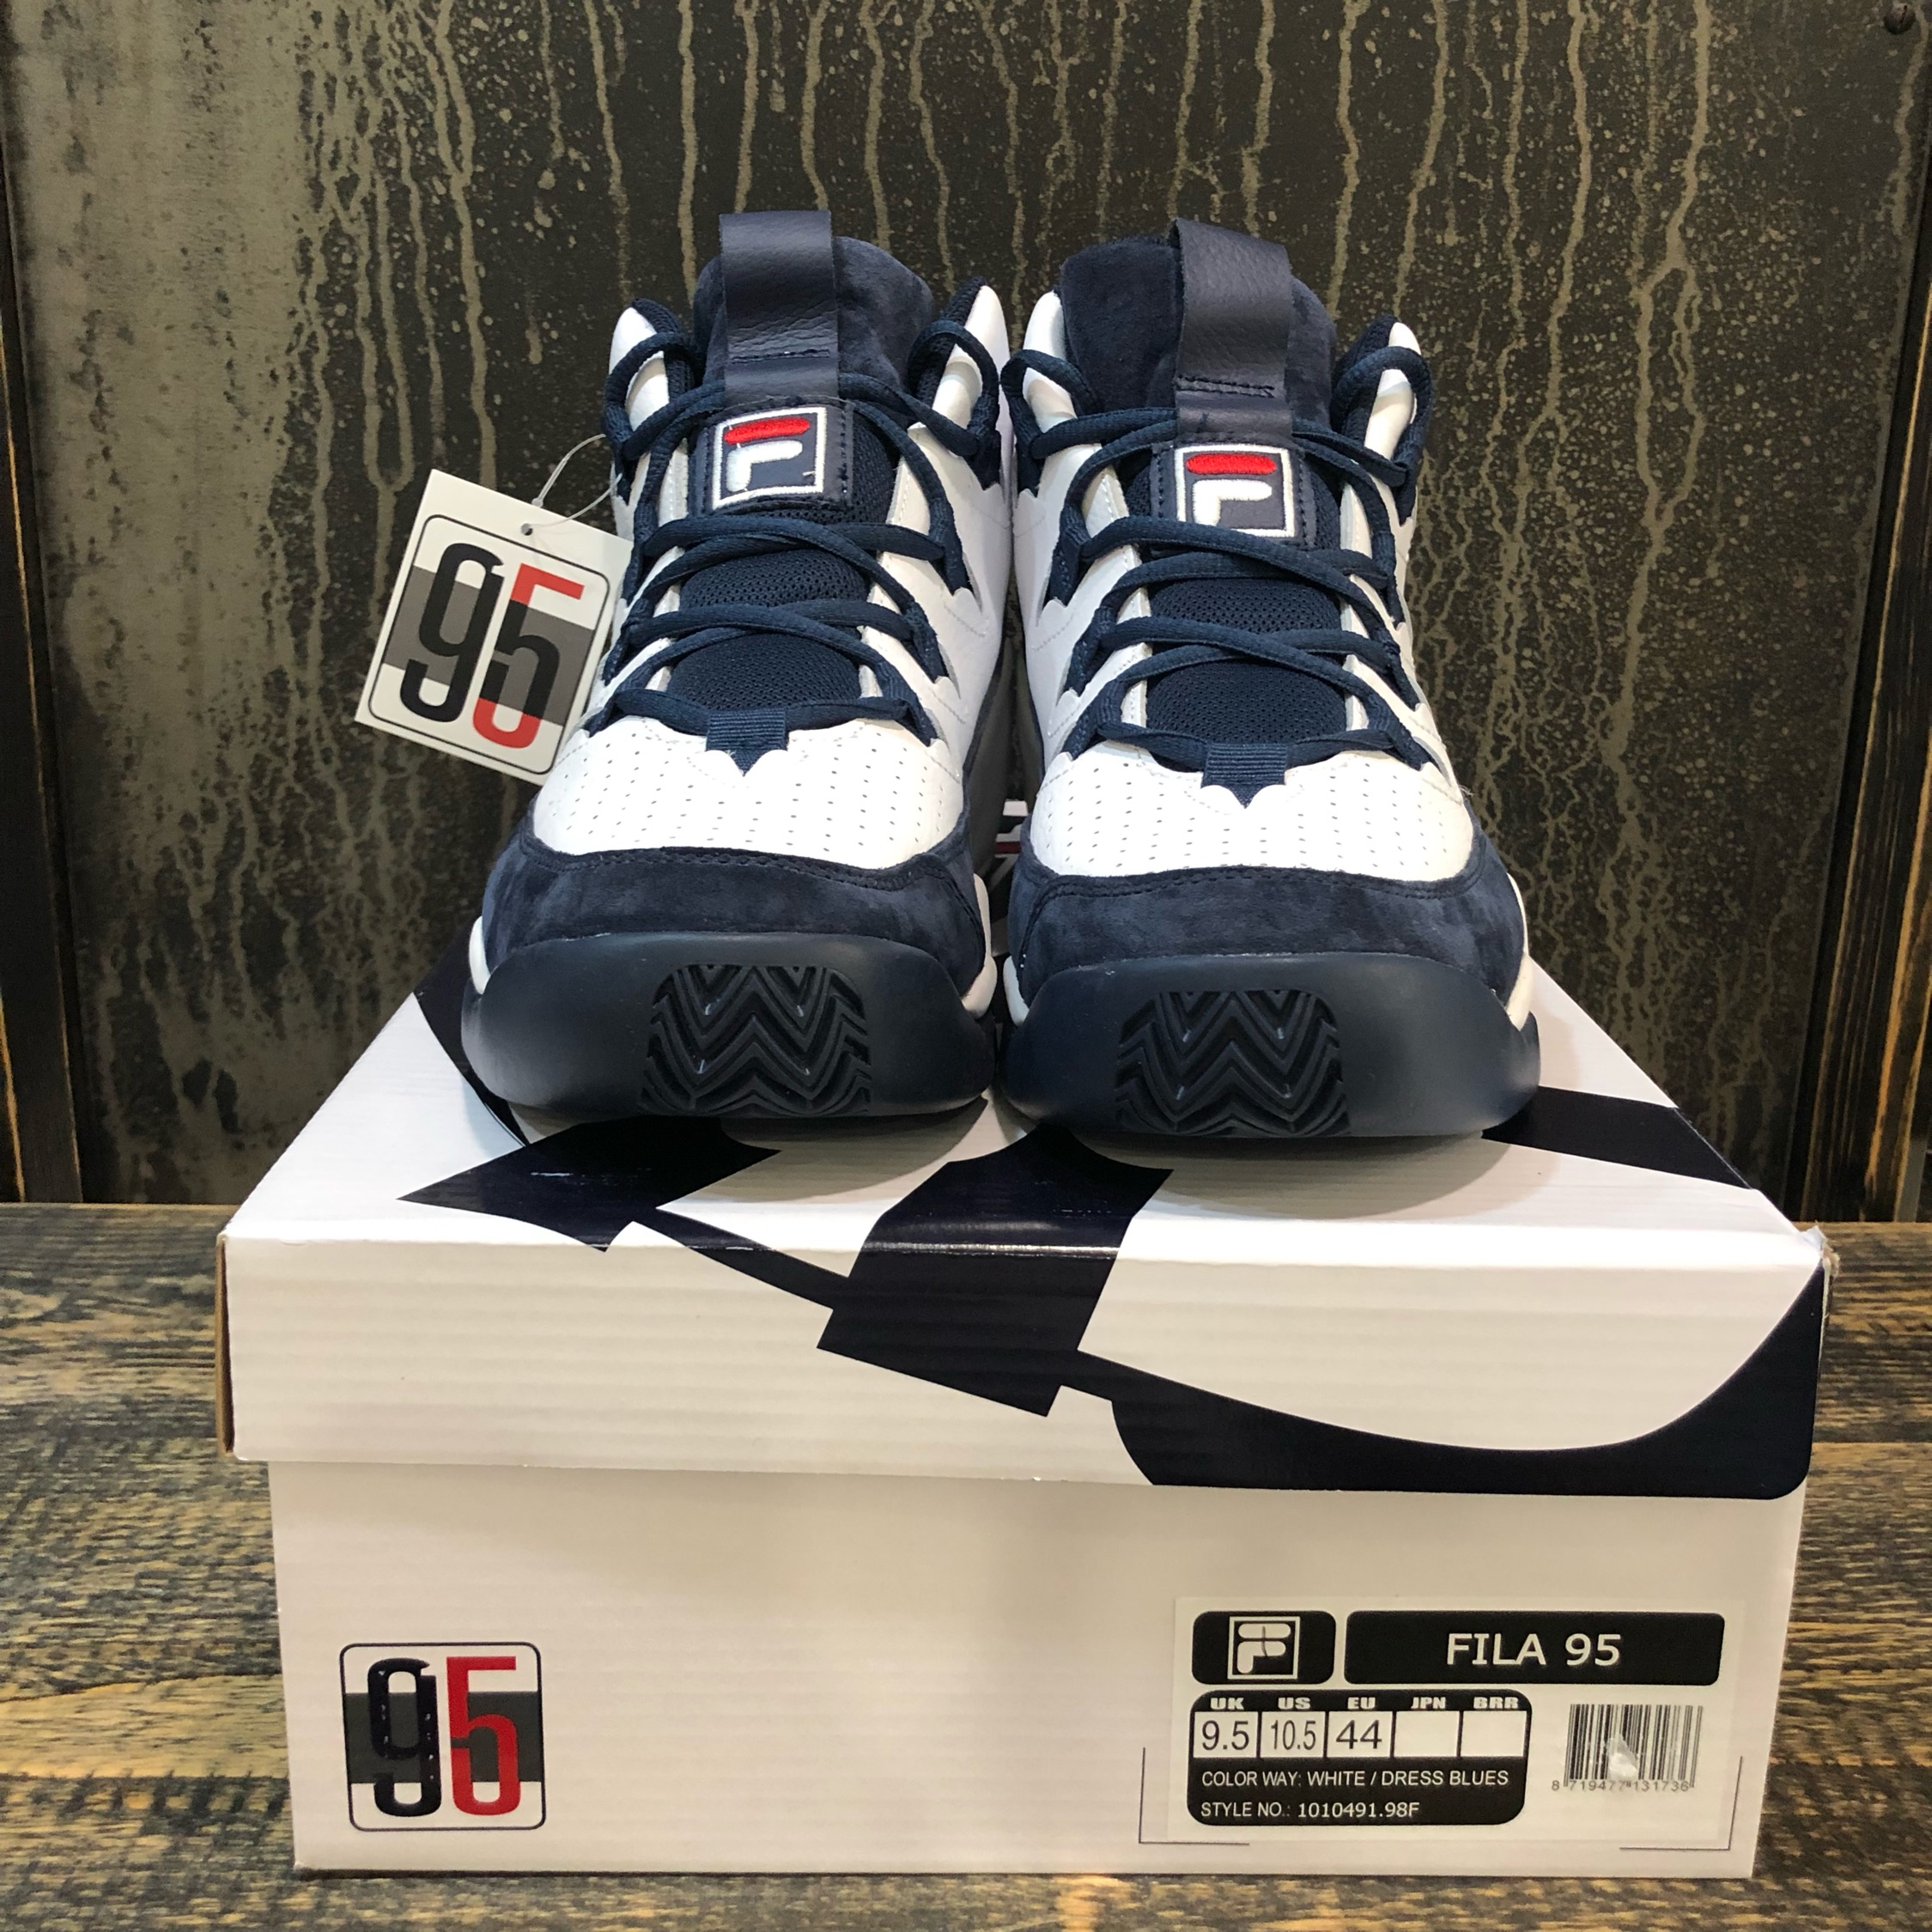 Fila 95 Color White/Dress Blues